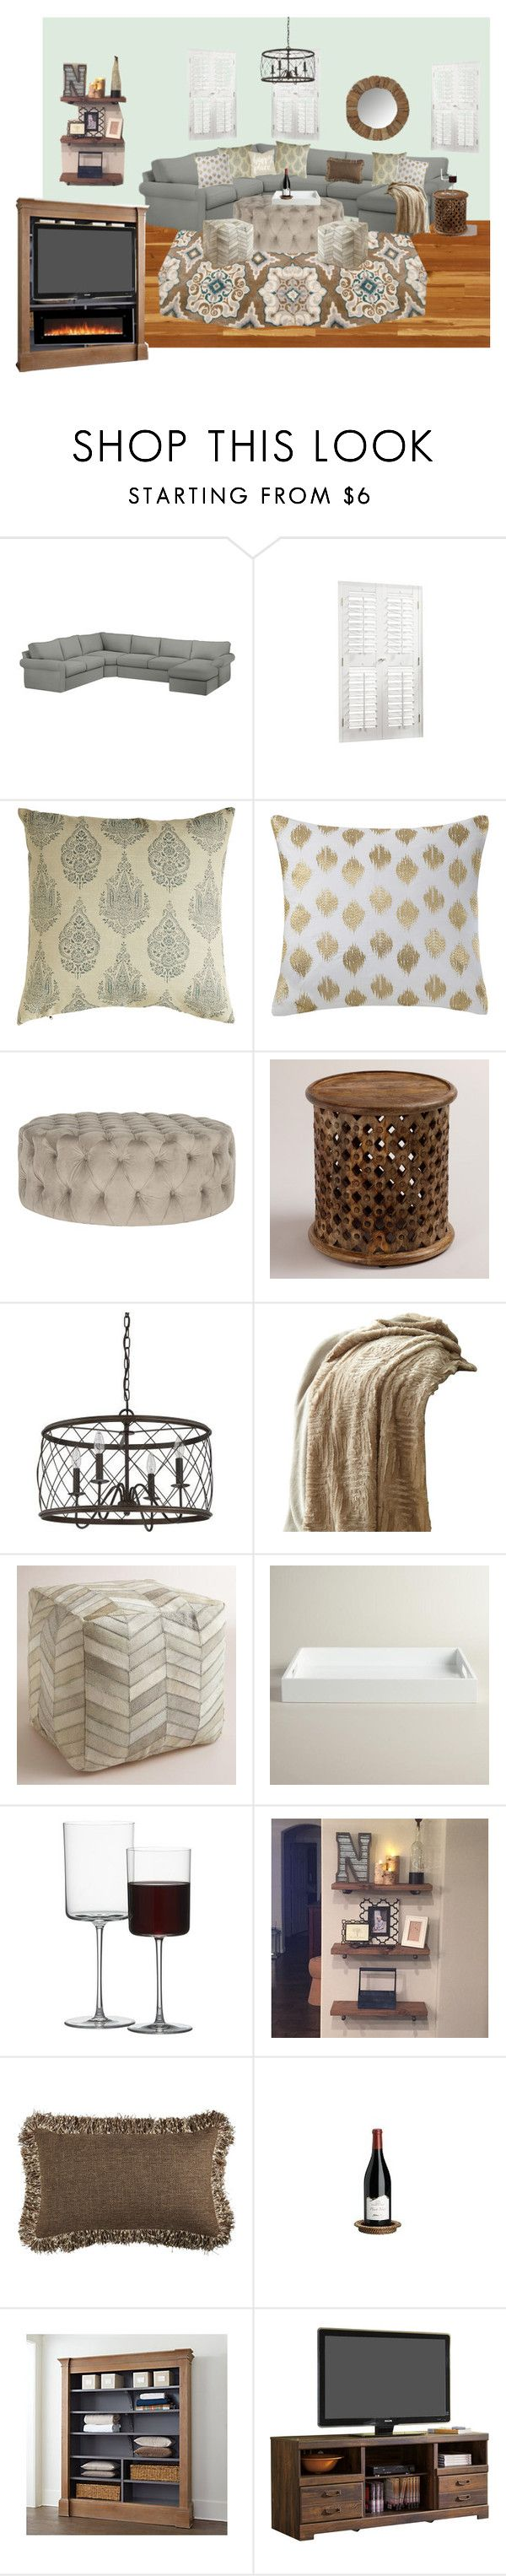 68 best images about design boards on pinterest cost for Interior designer cost plus